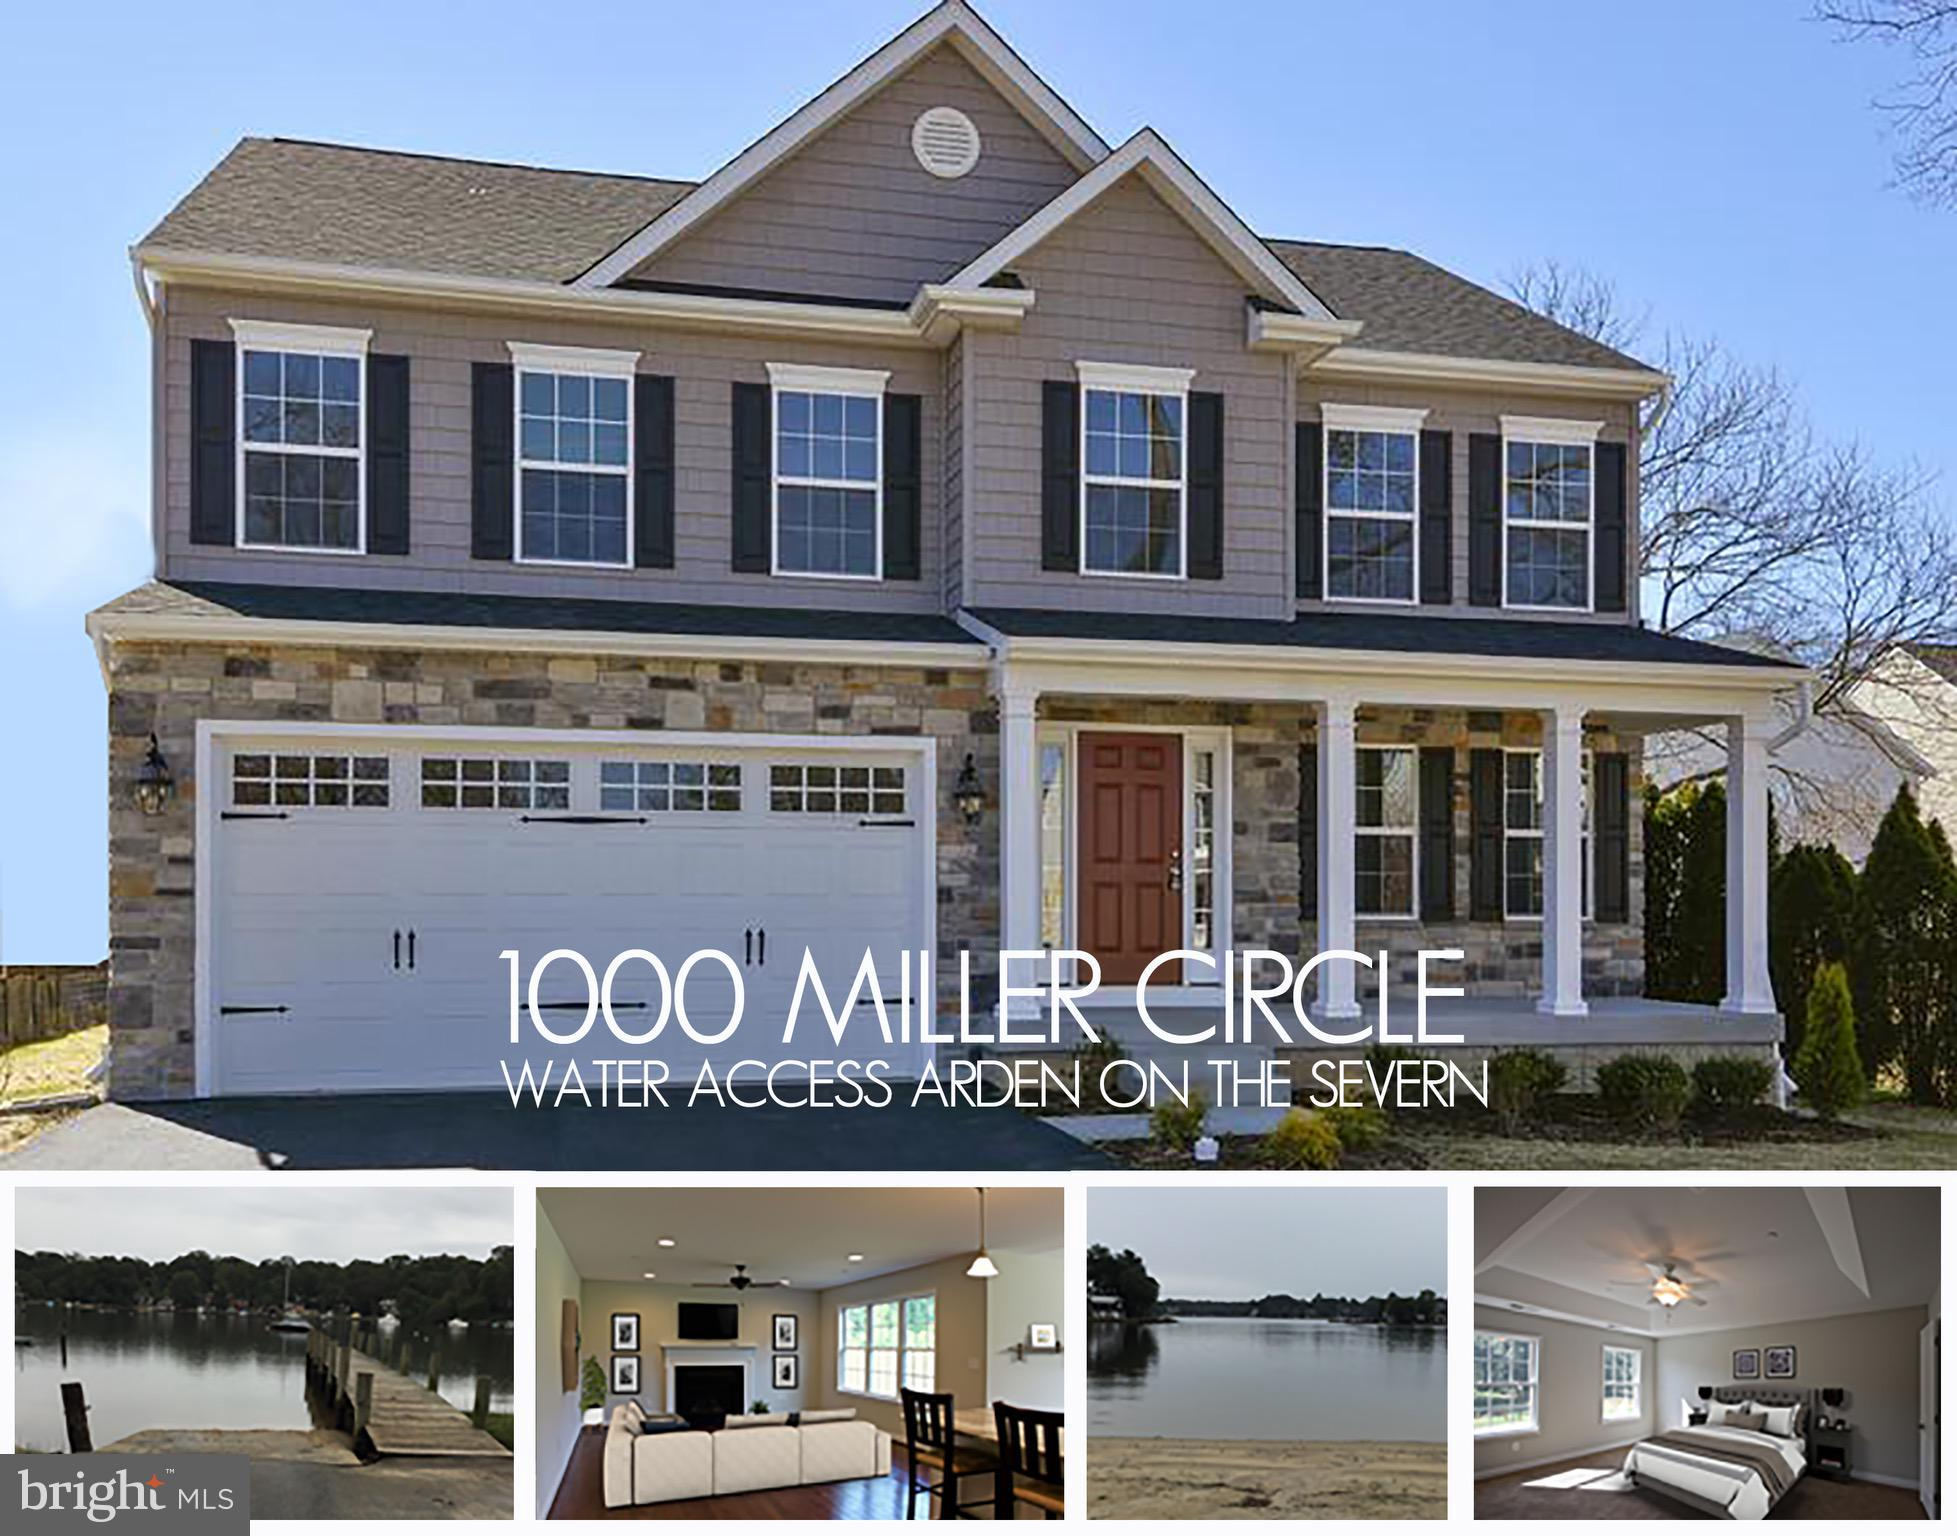 1000 MILLER CIRCLE, Crownsville, 21032 - SOLD LISTING, MLS # 1002265590 |  RE/MAX of Reading